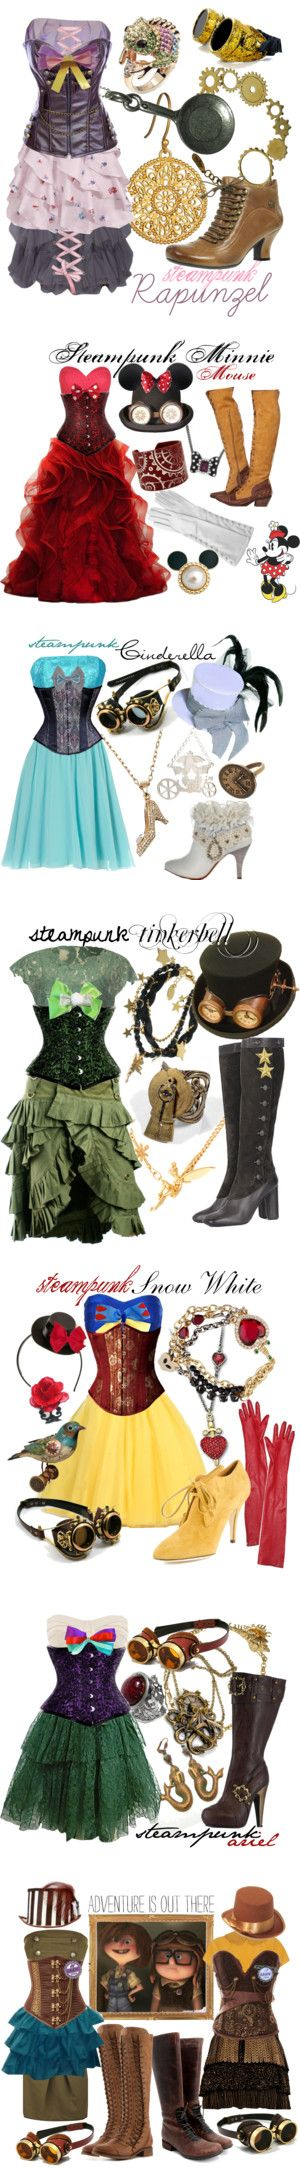 Disney Steampunk Love Tinkerbell